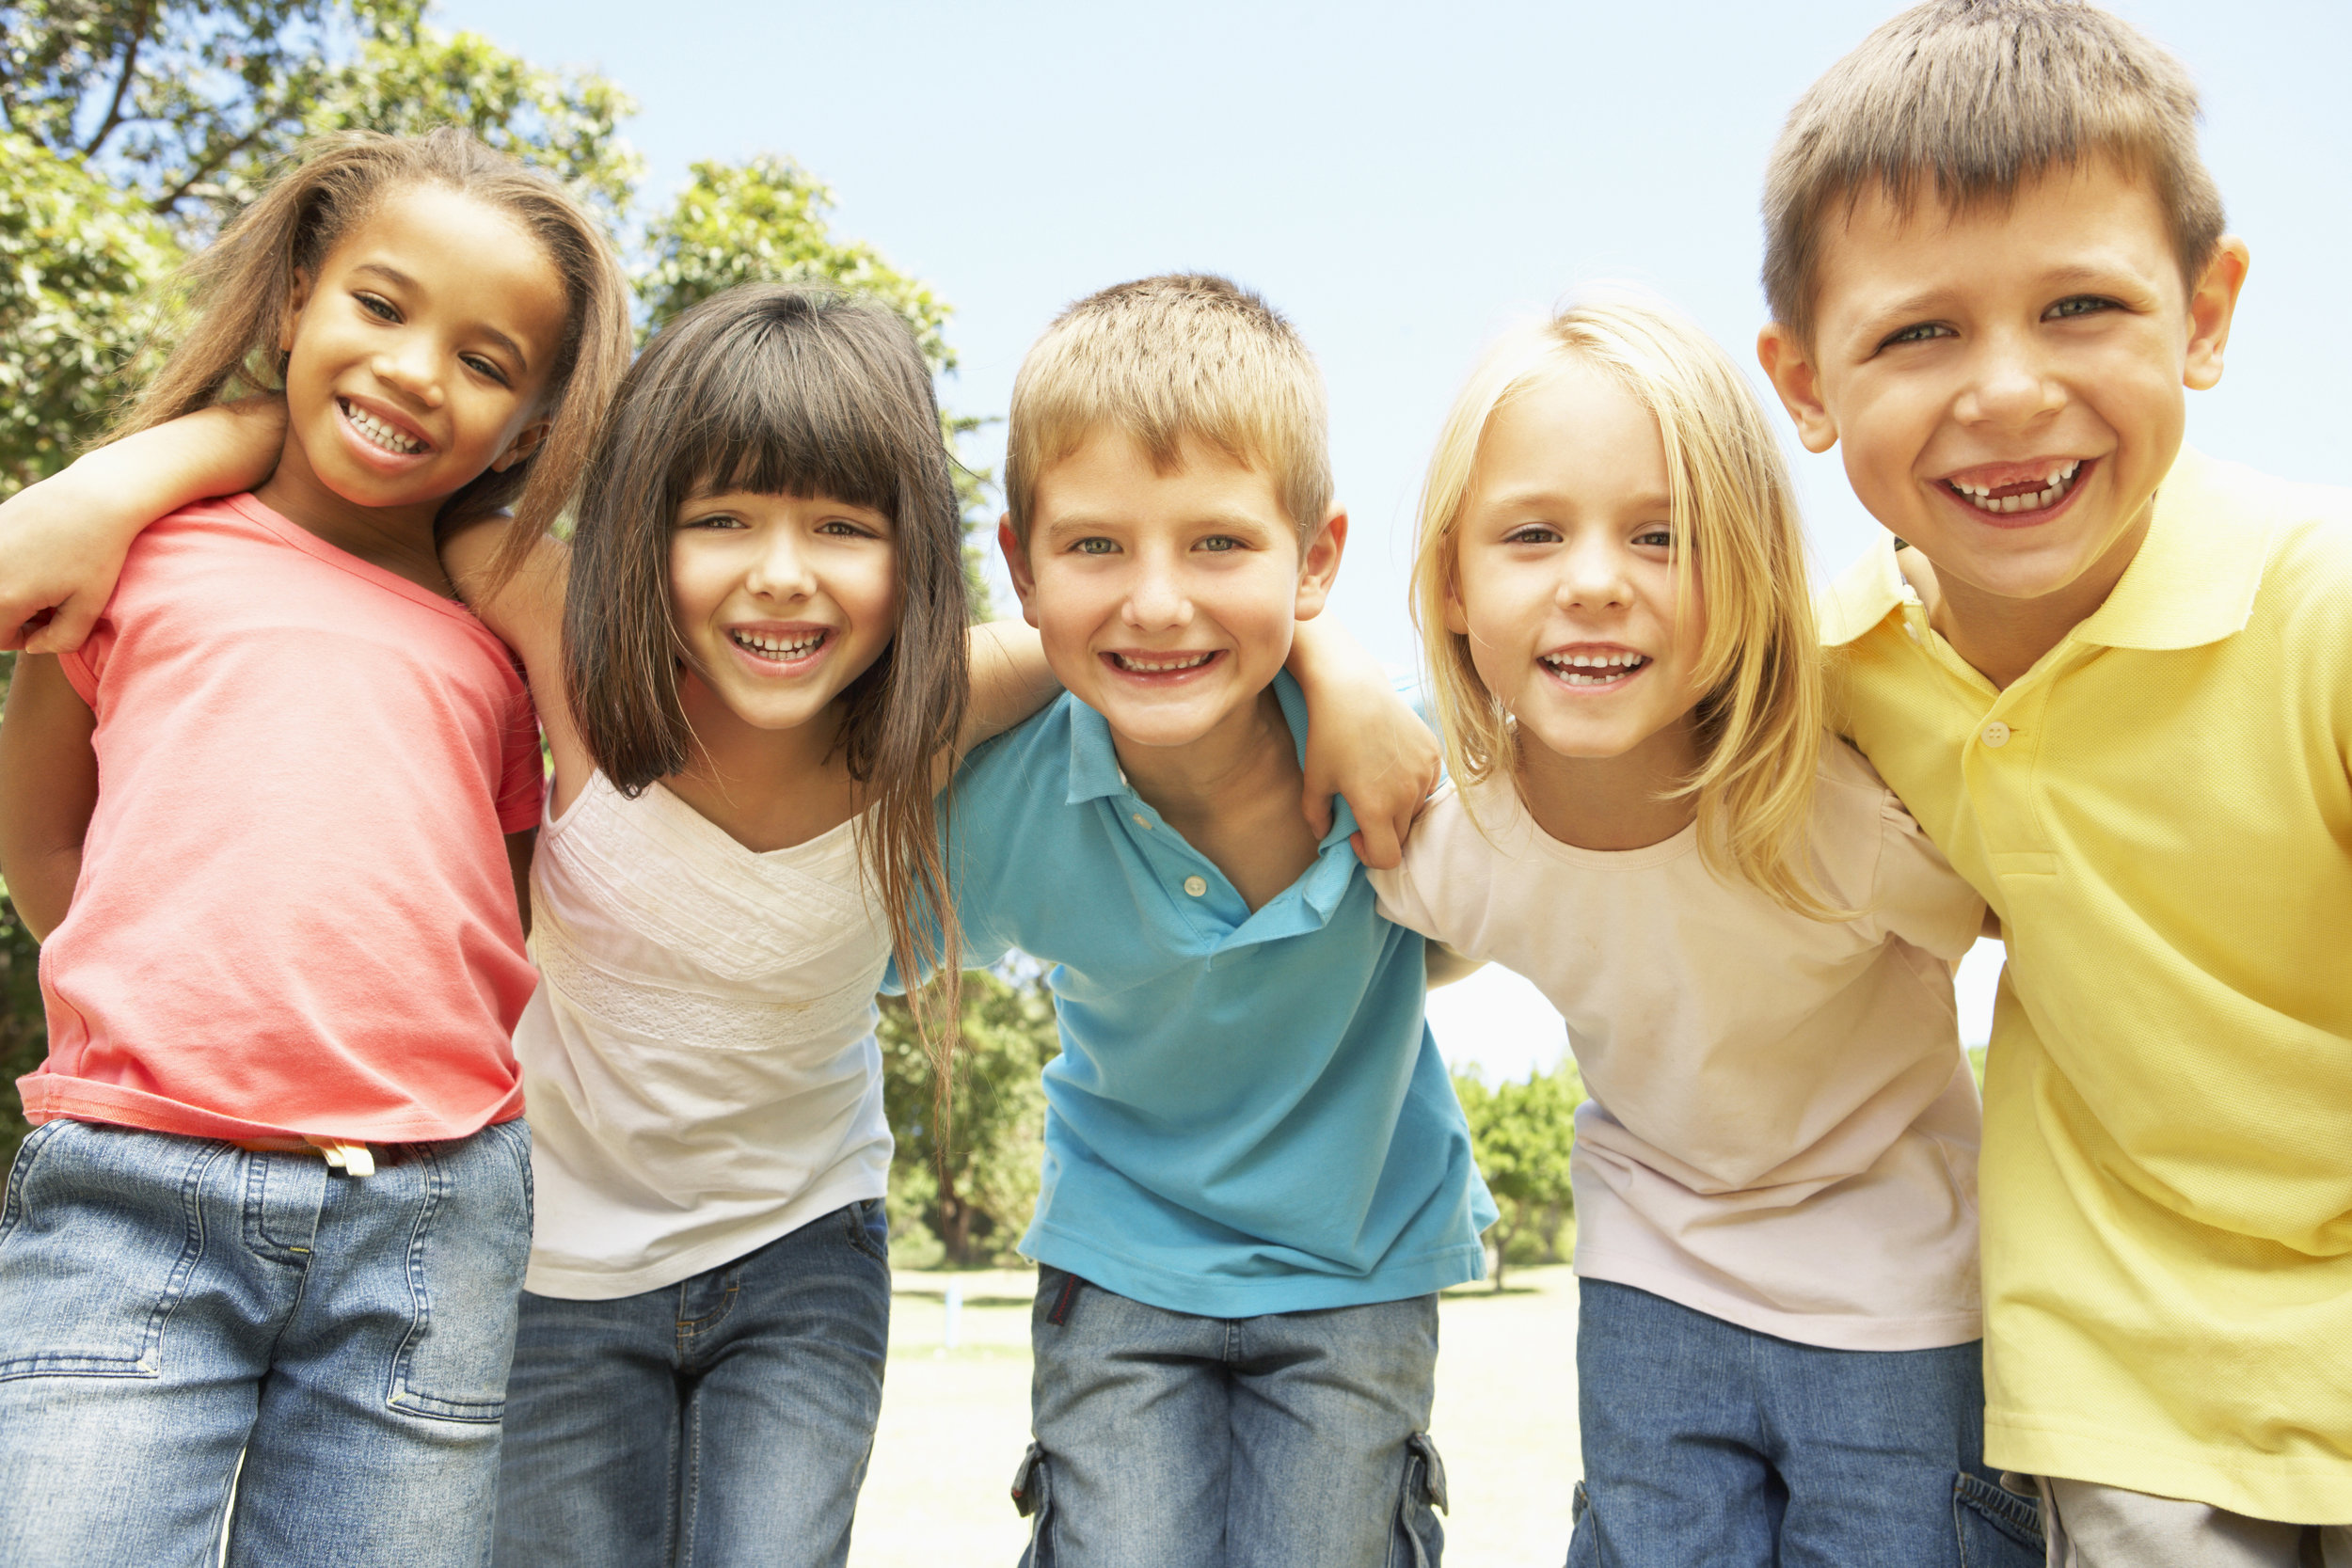 Smiling group of mixed children